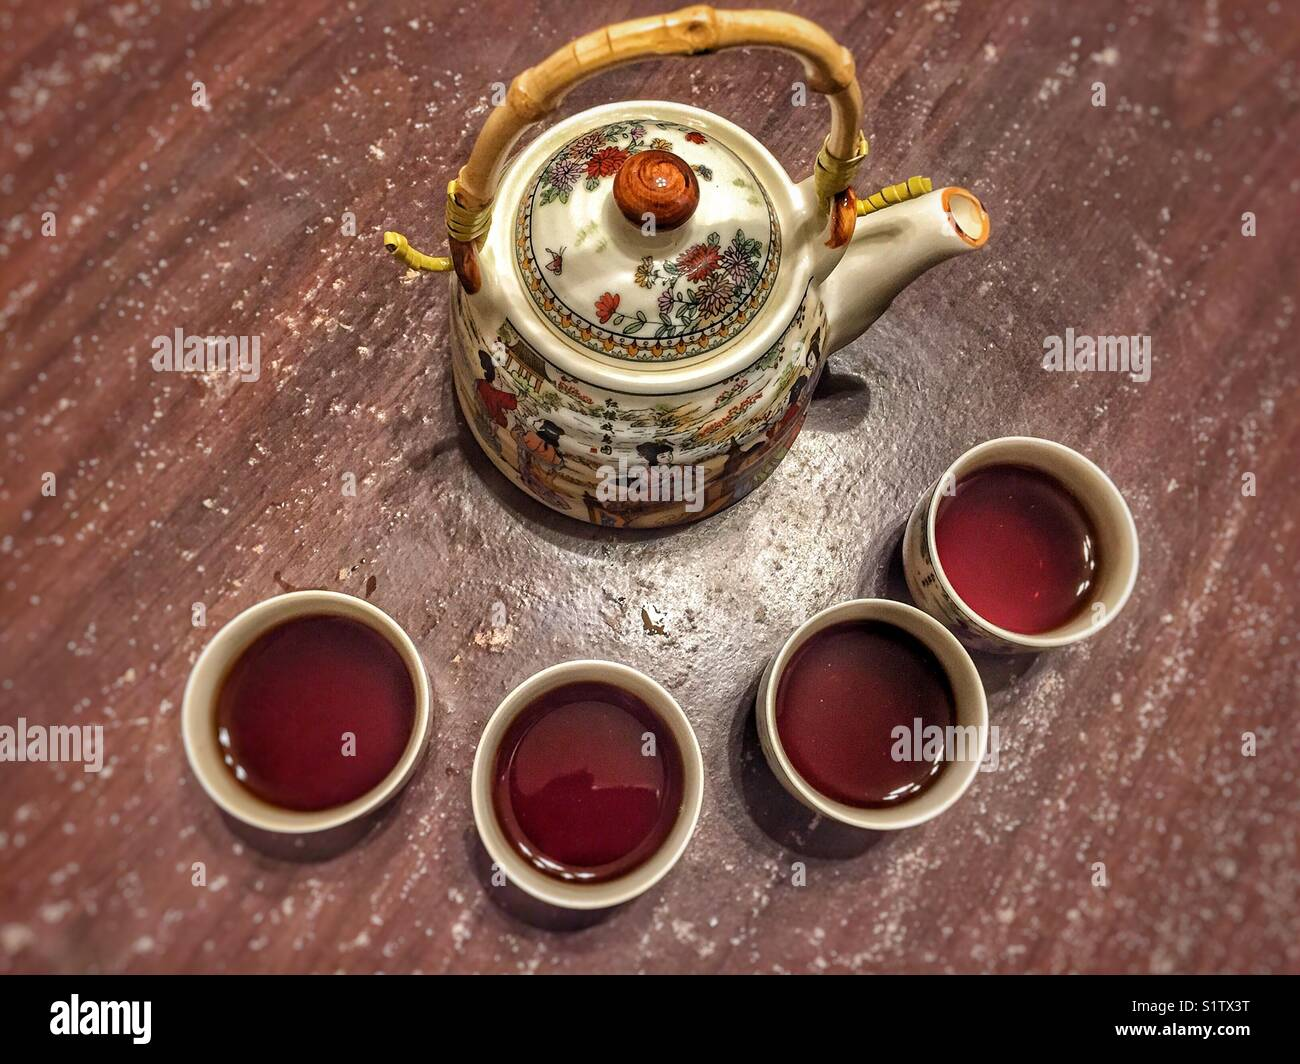 Chinese tea pot with four cups full of tea - Stock Image